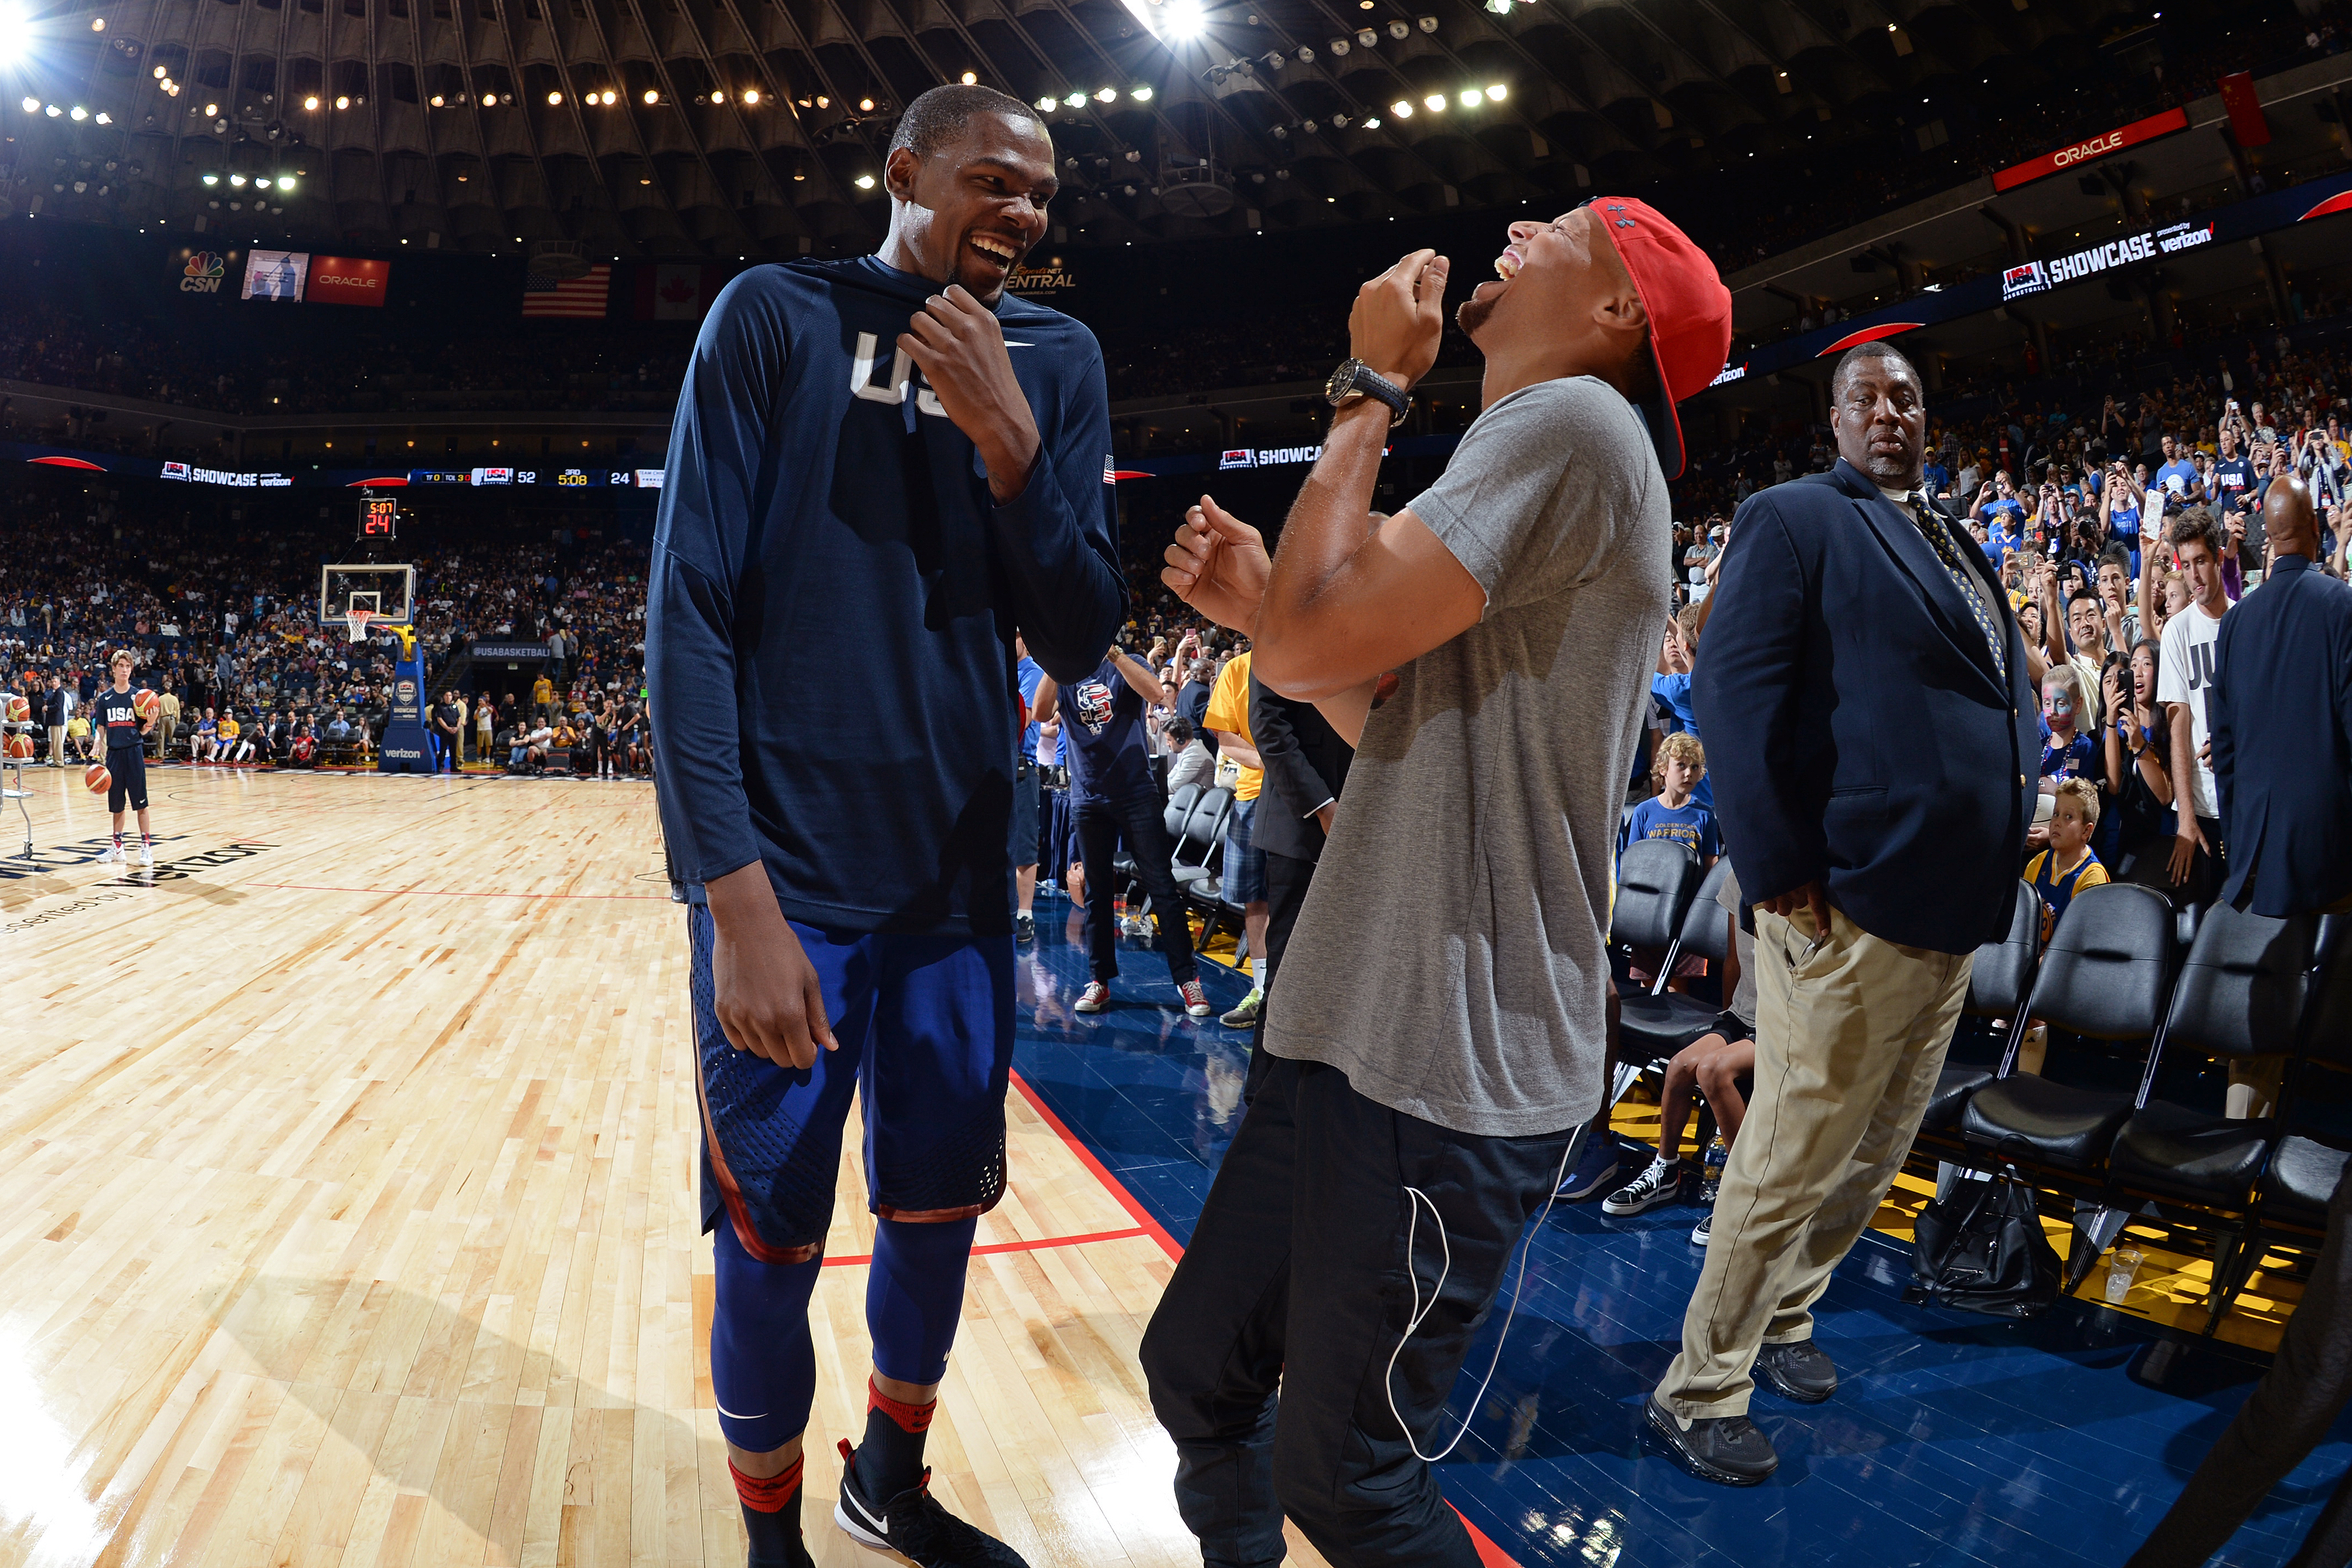 OAKLAND, CA - JULY 26: Kevin Durant #5 of the USA Basketball Men's National Team speaks with Stephen Curry #30 of the Golden State Warriors during the game against China on July 26, 2016 at ORACLE Arena in Oakland, California.